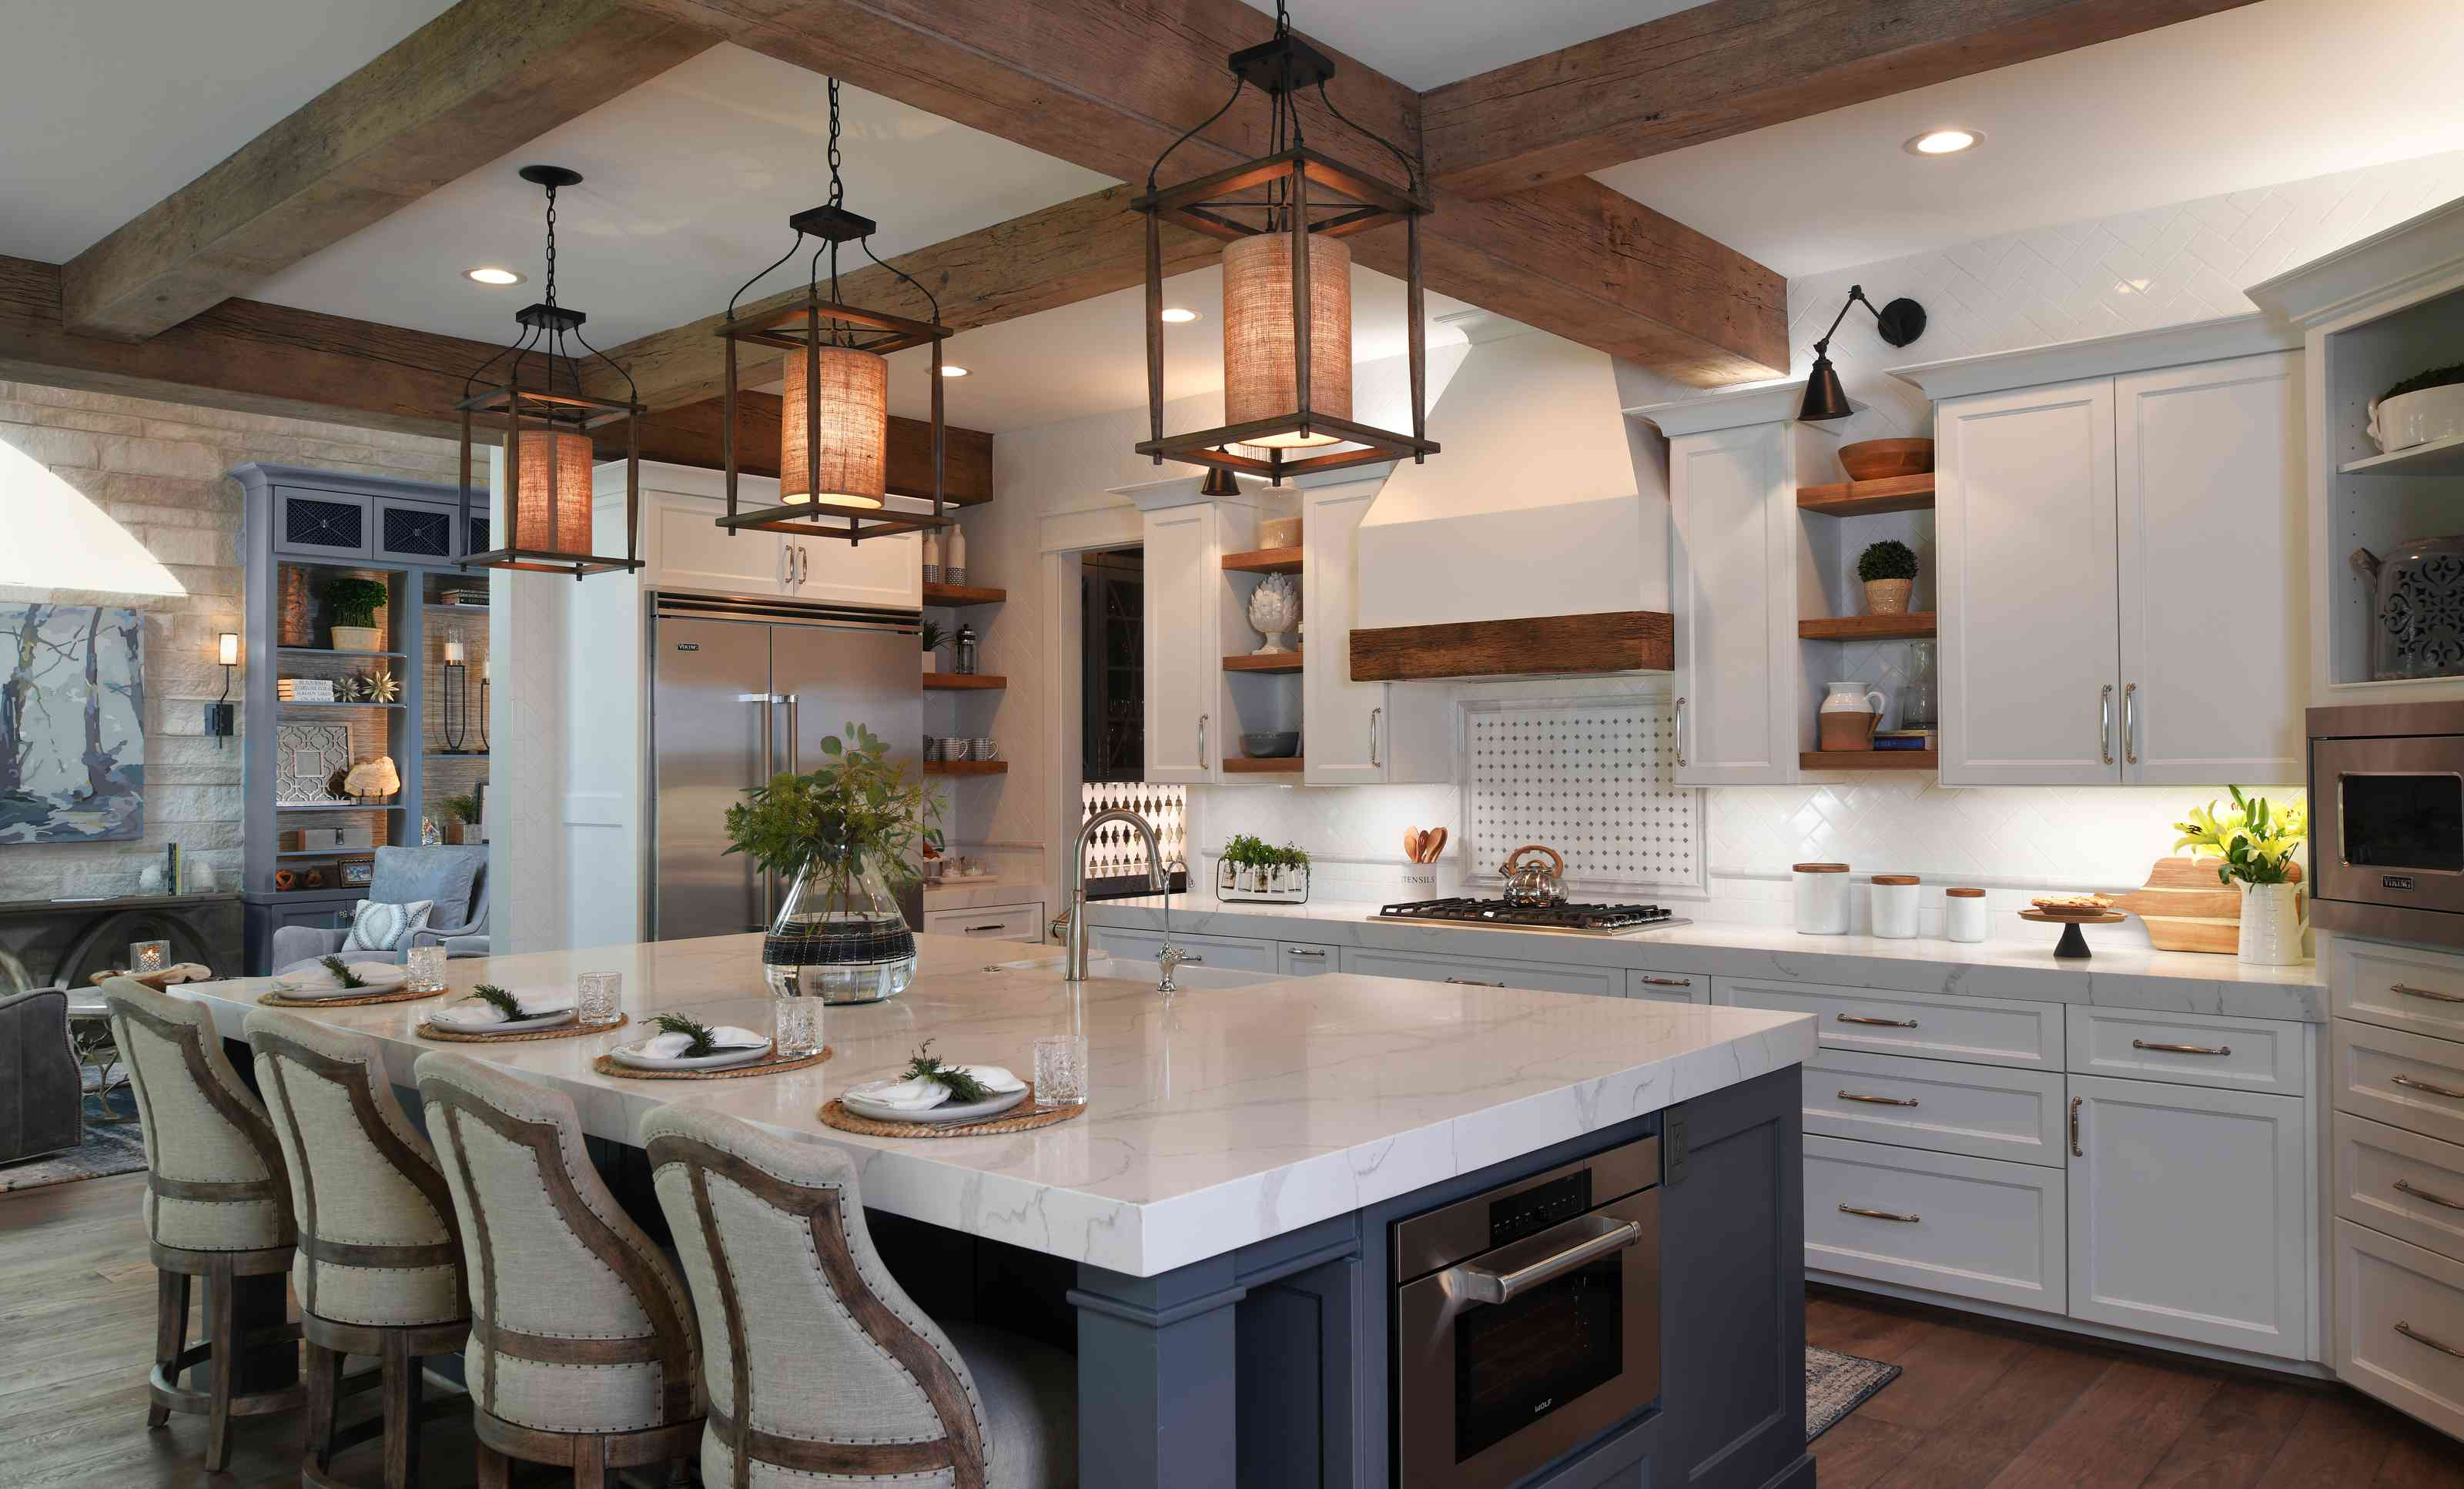 Kitchen with wooden beams